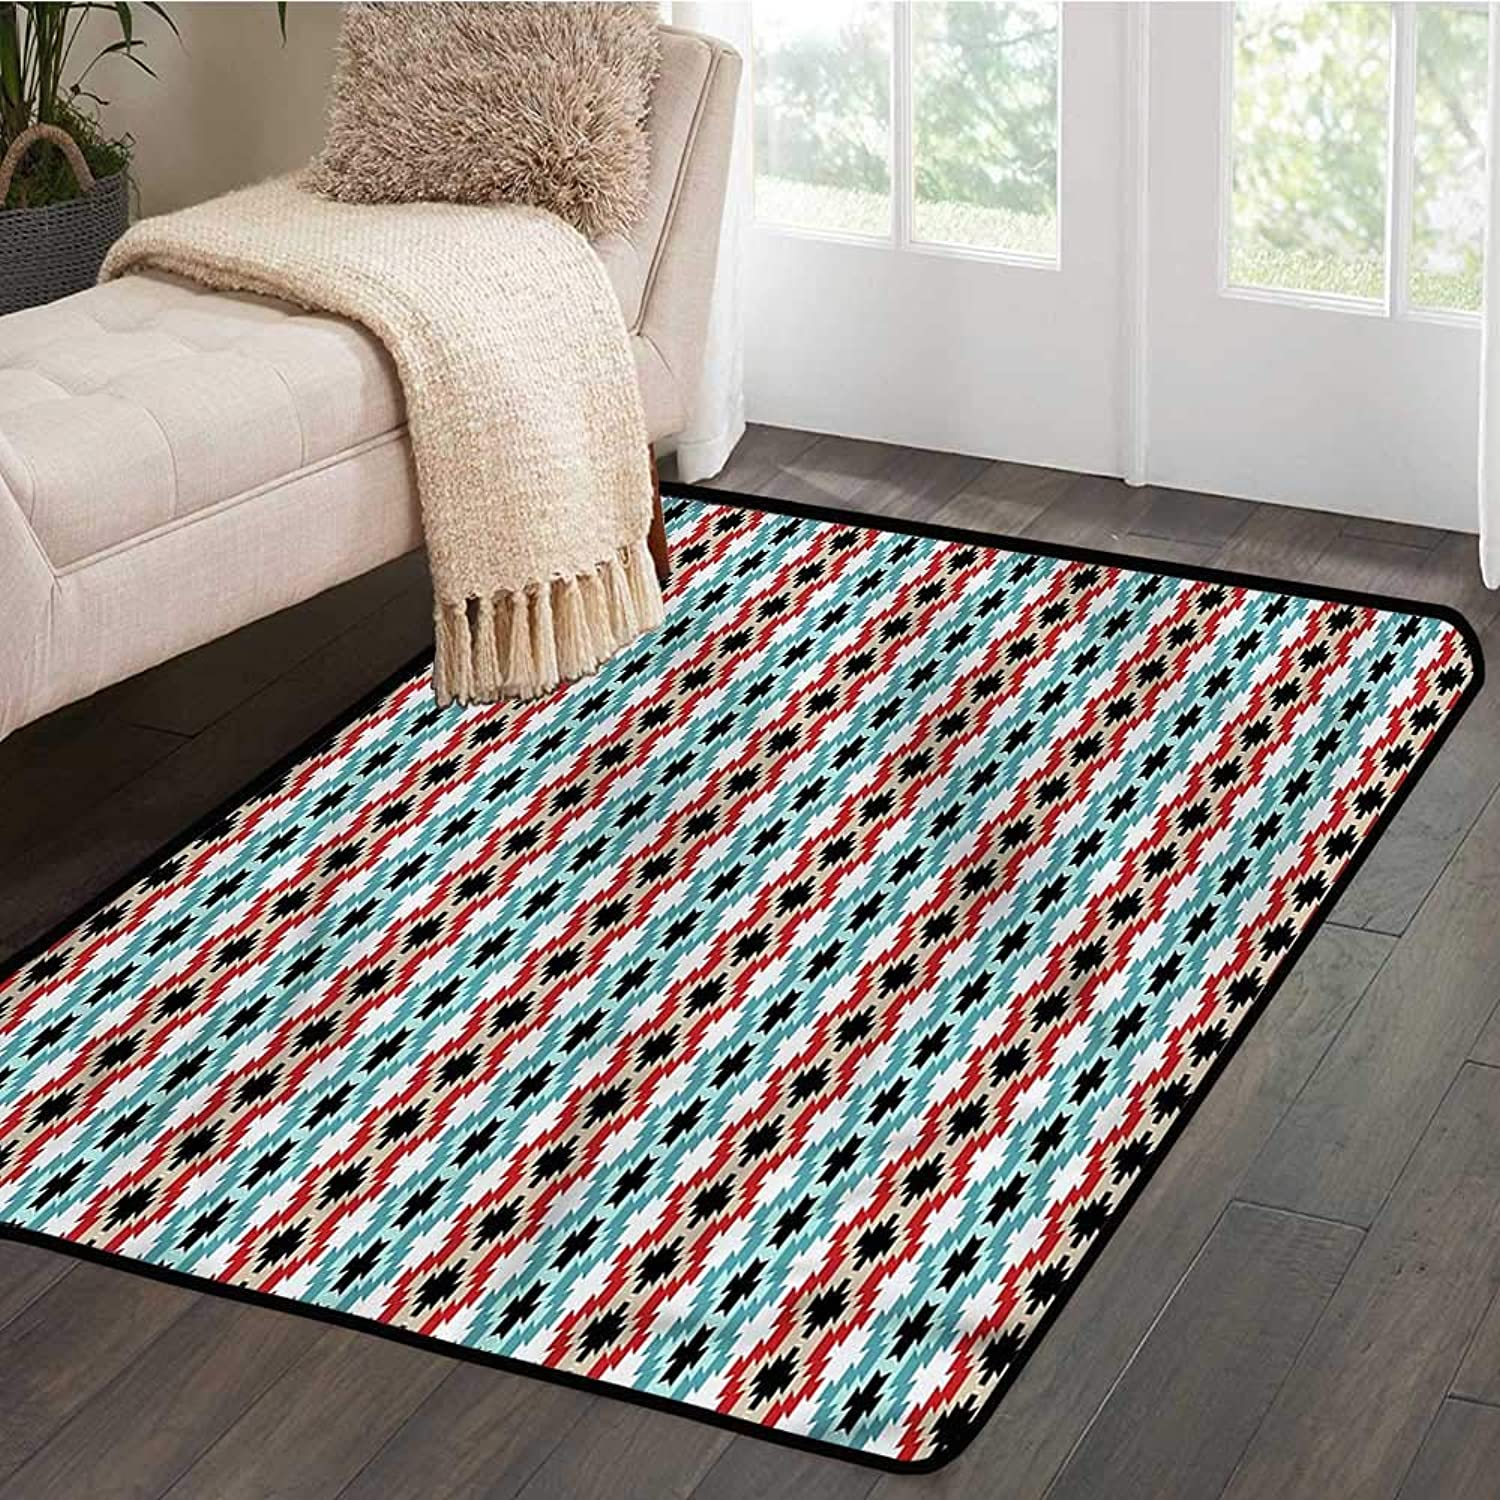 Kids rugsAfghan,colorful Ethnic MotifsW 55  x L63 Slip-Resistant Washable Entrance Doormat